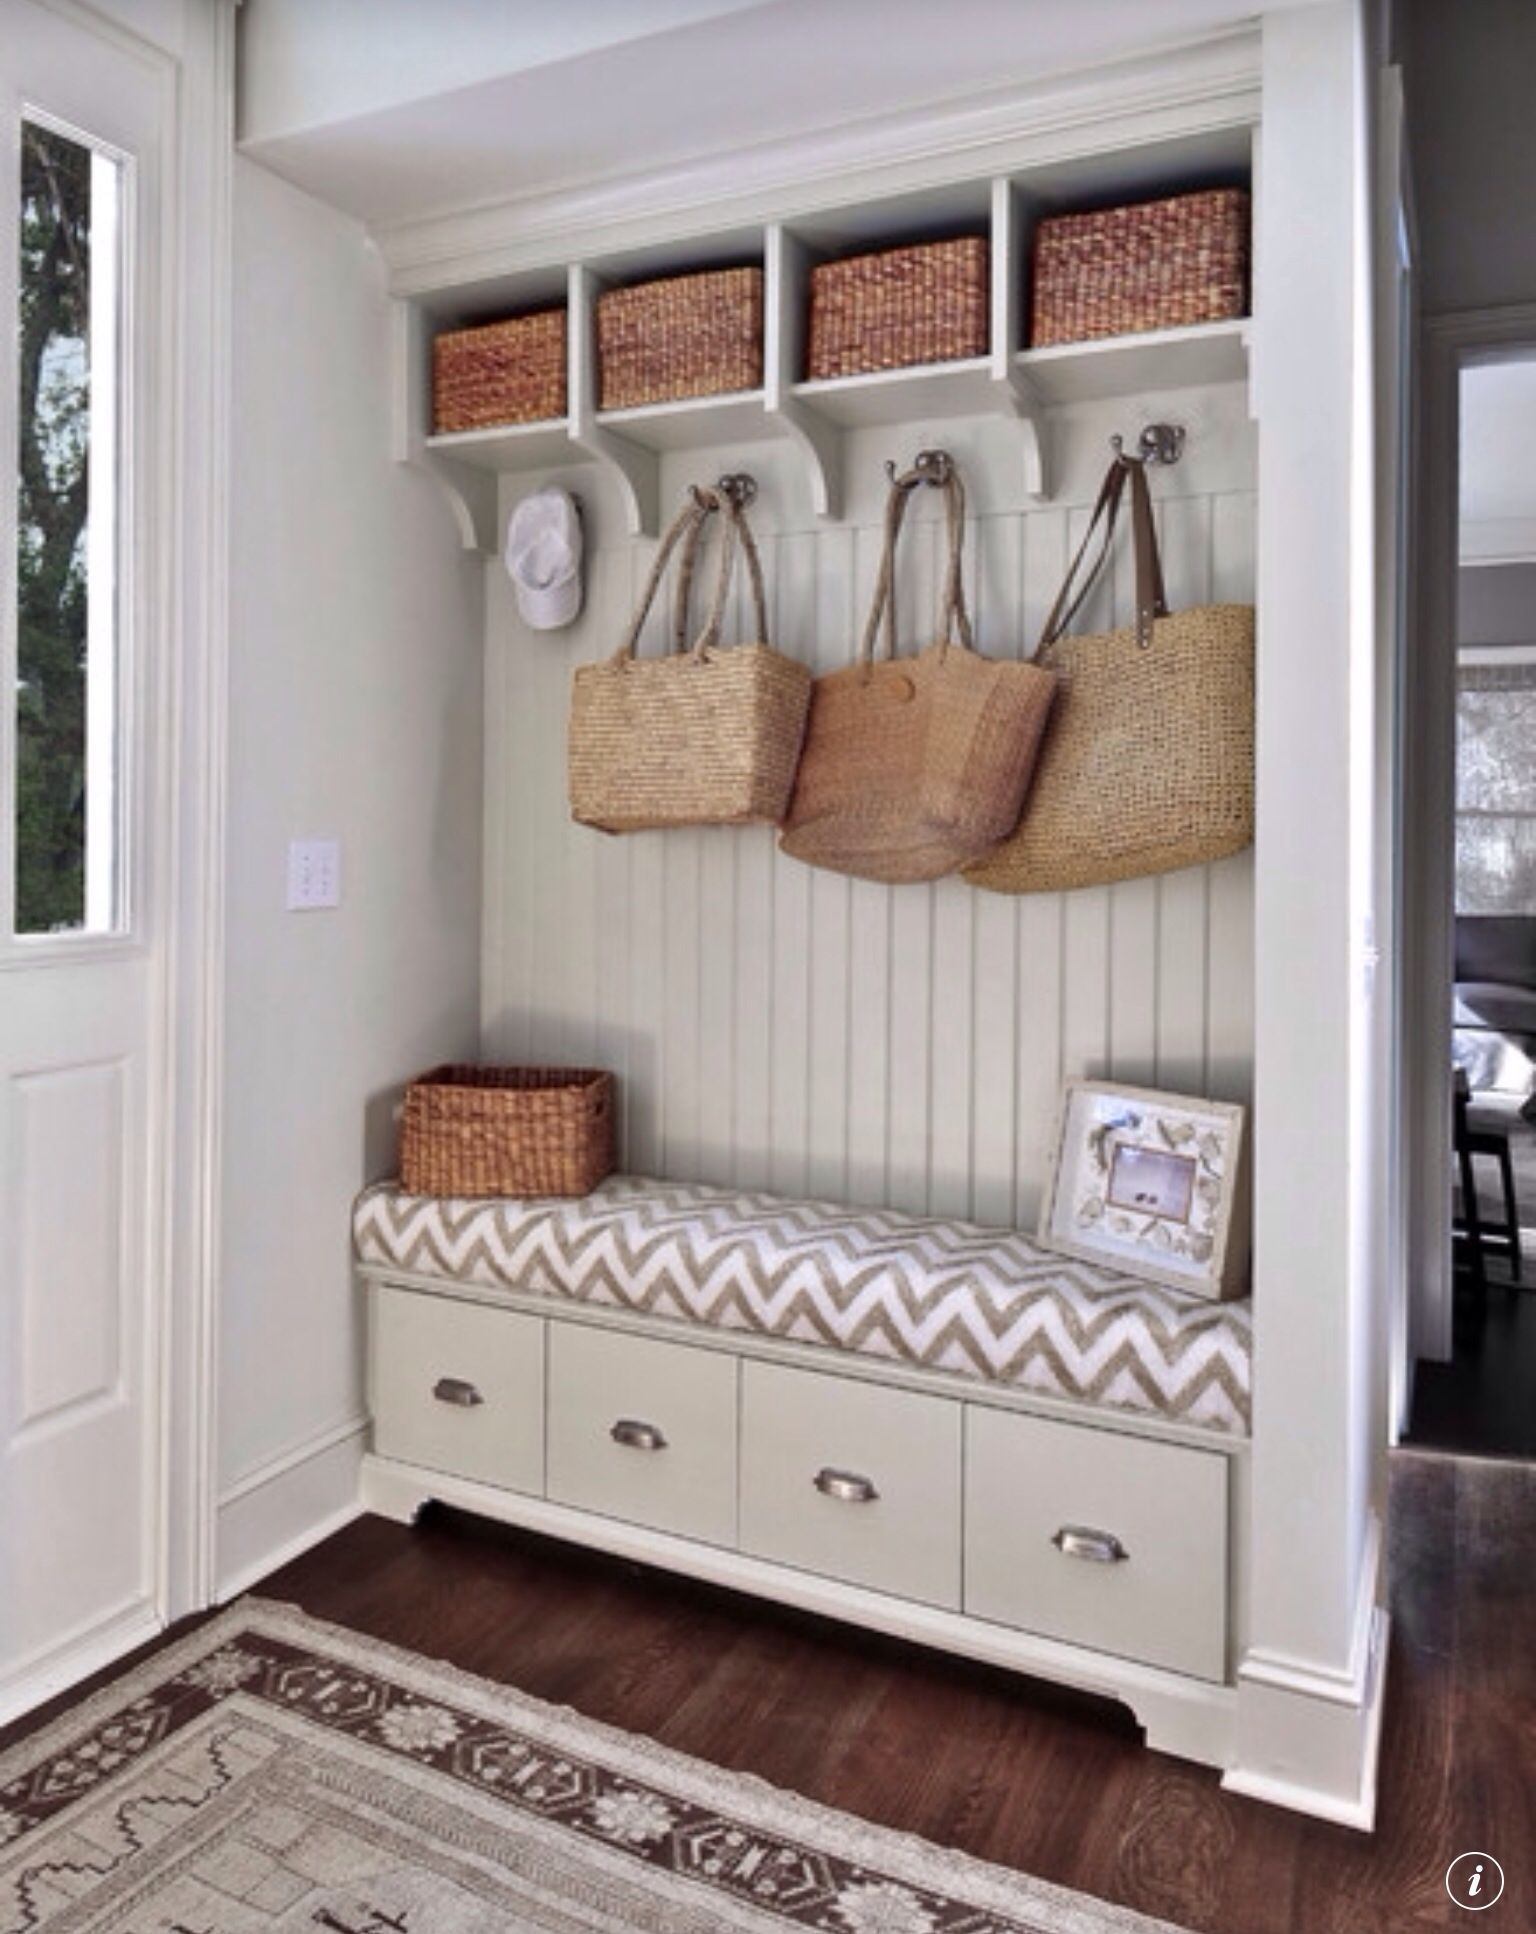 I Could Probably Do This In Place Of Closet Thats